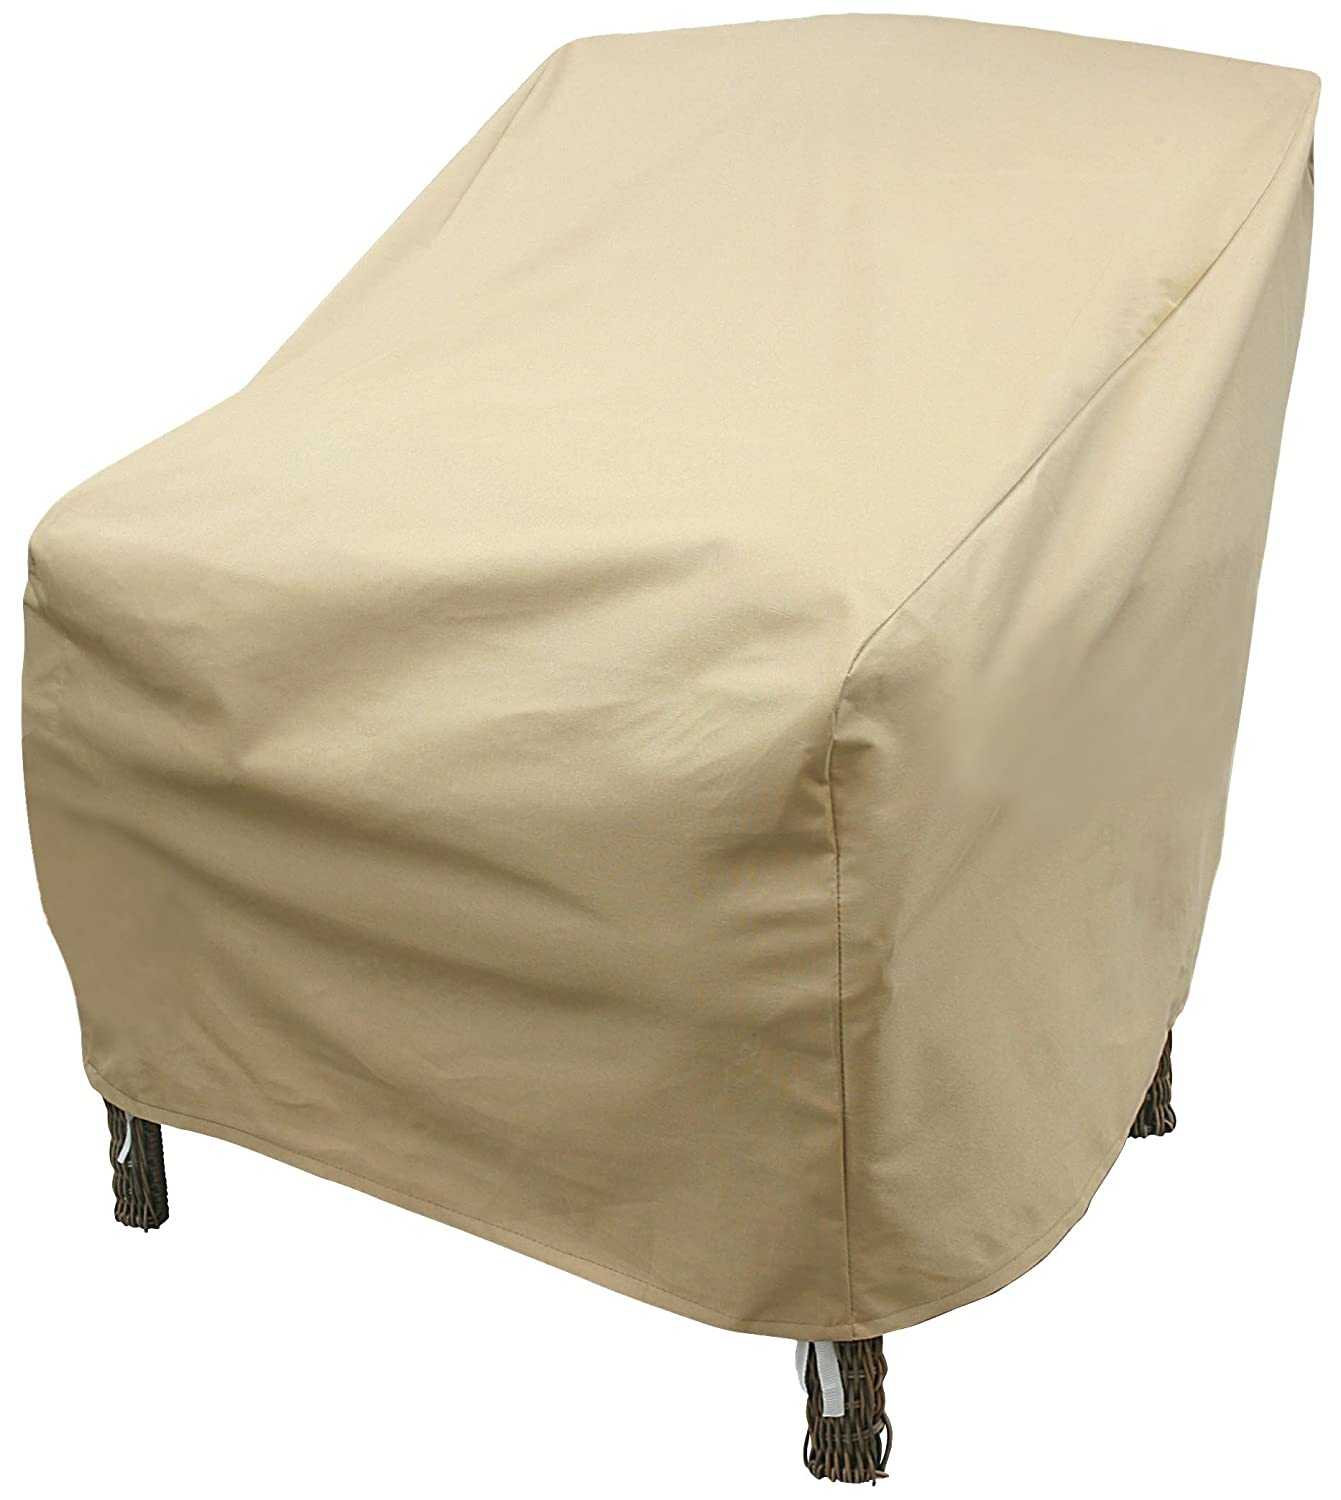 Patio Furniture Covers at Amazoncom Outdoor Furniture Covers